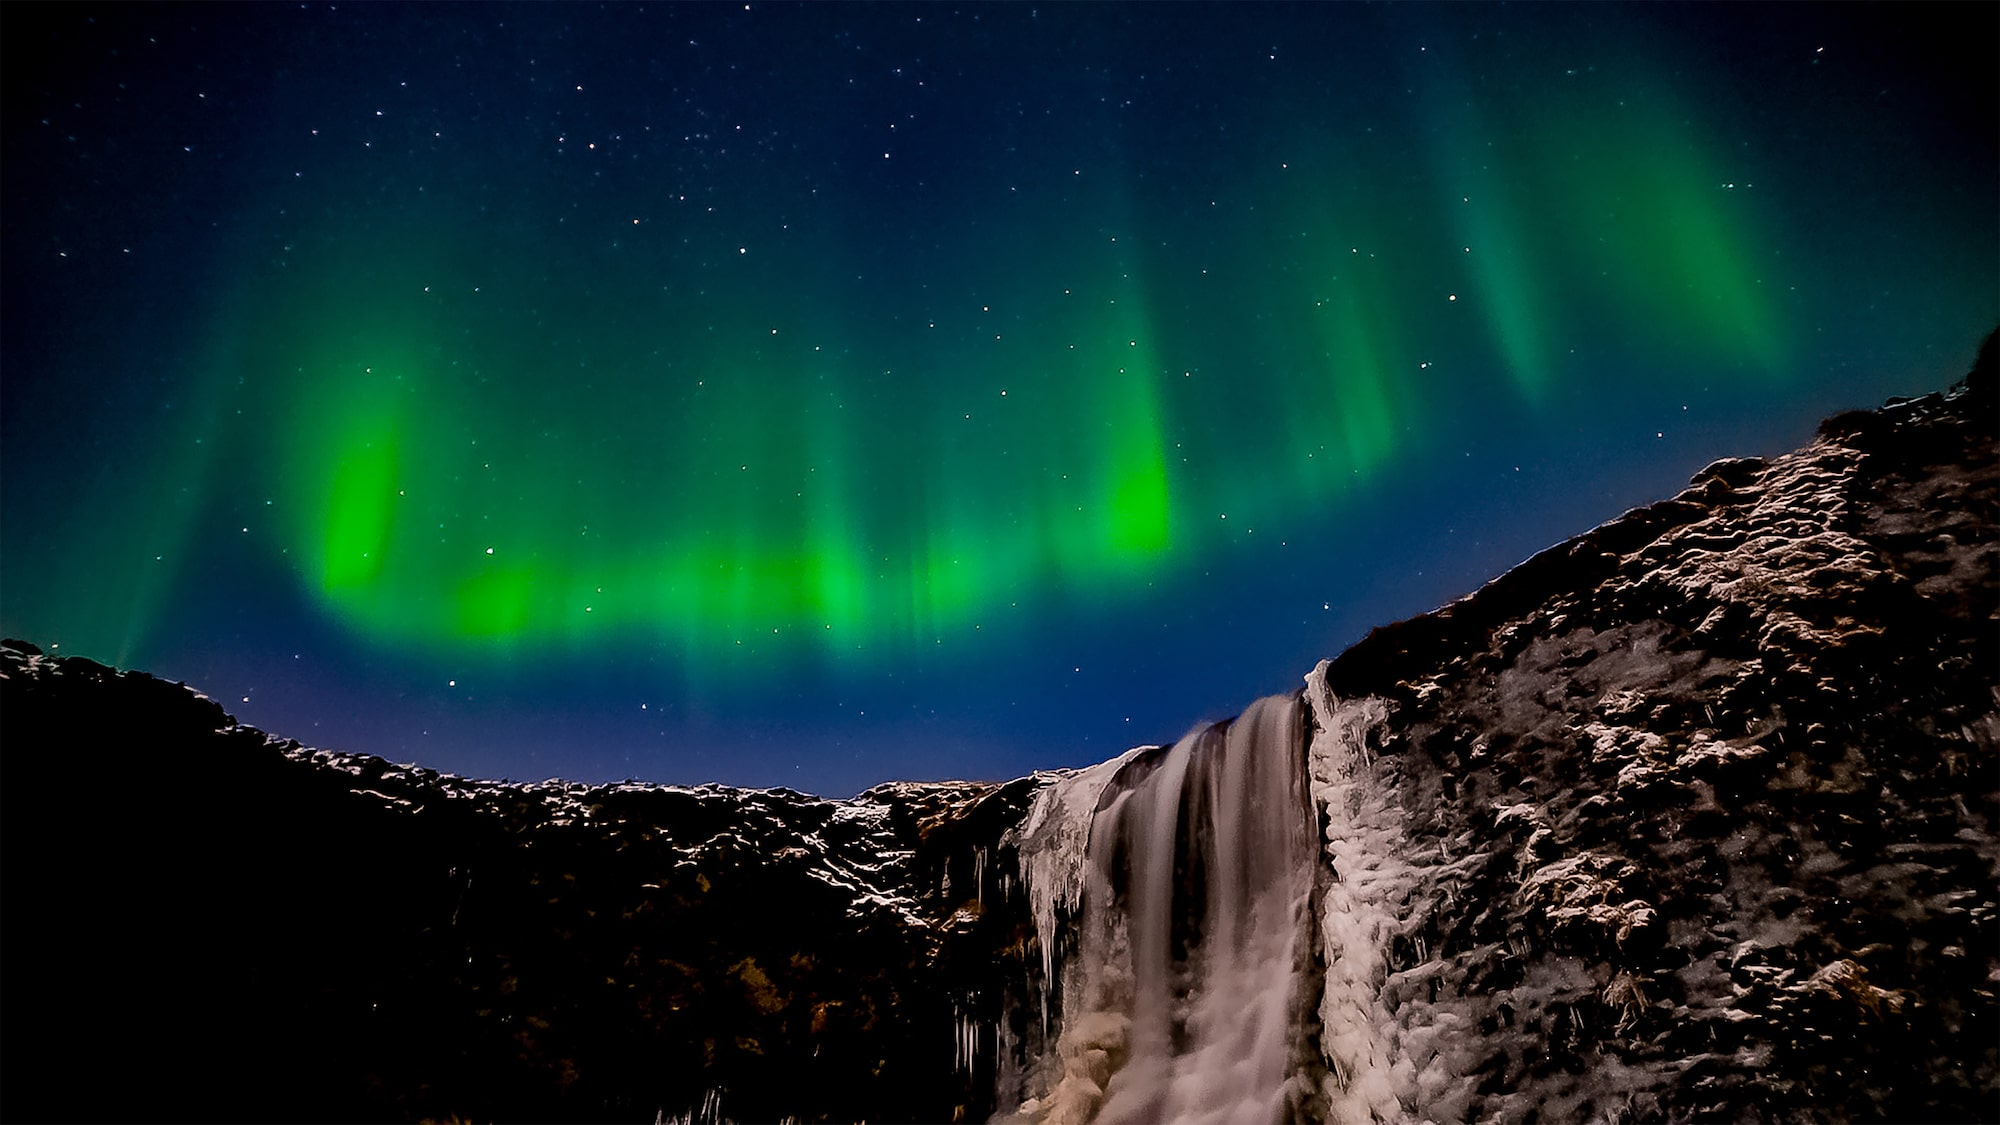 steve collins sony alpha 7SII intense green aurora light dances over a waterfall in iceland